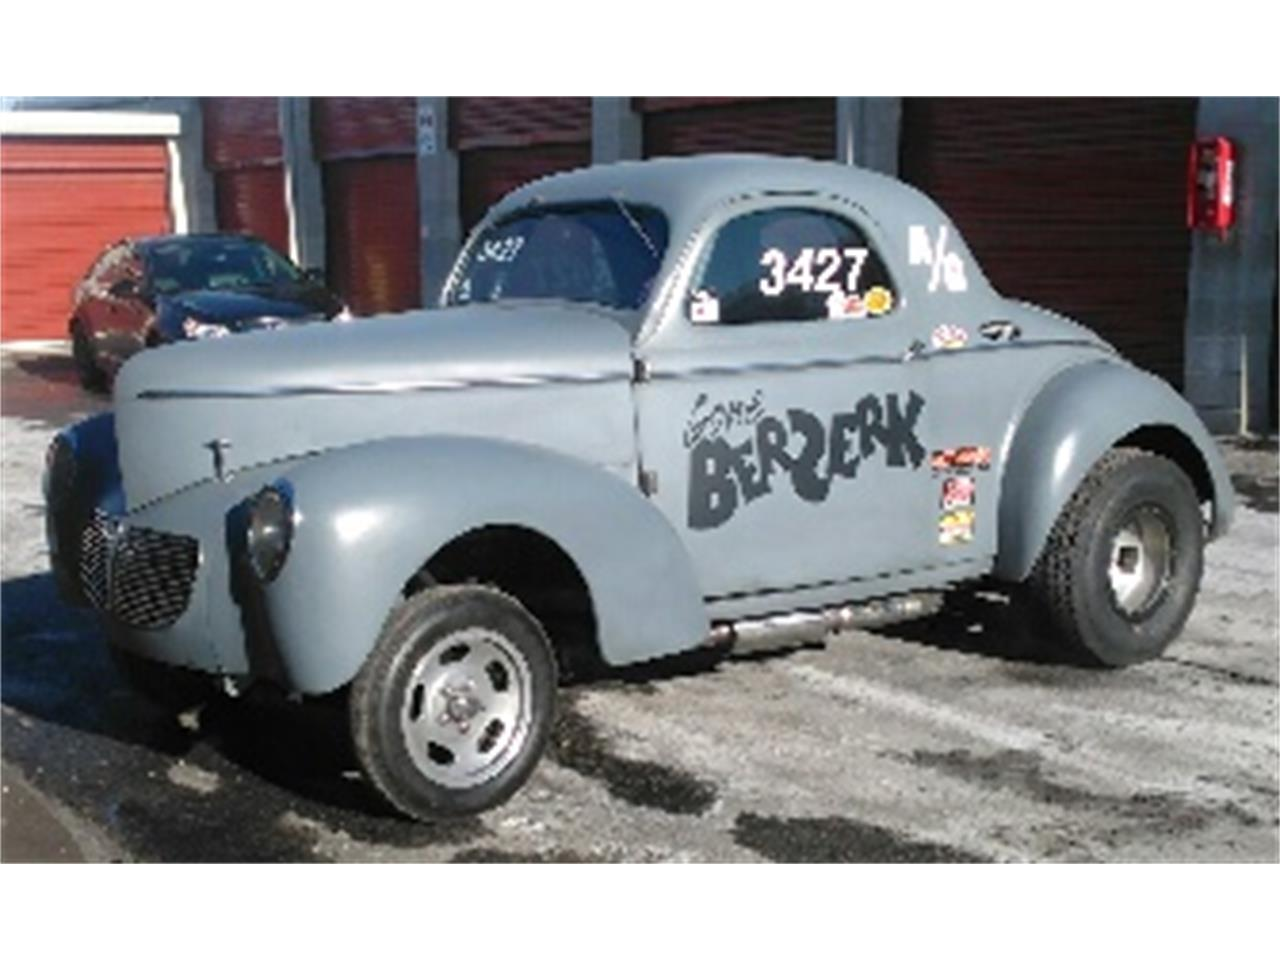 Large Picture of Classic '40 Willys Coupe located in Ajax Ontario - $64,750.00 Offered by a Private Seller - KMZY